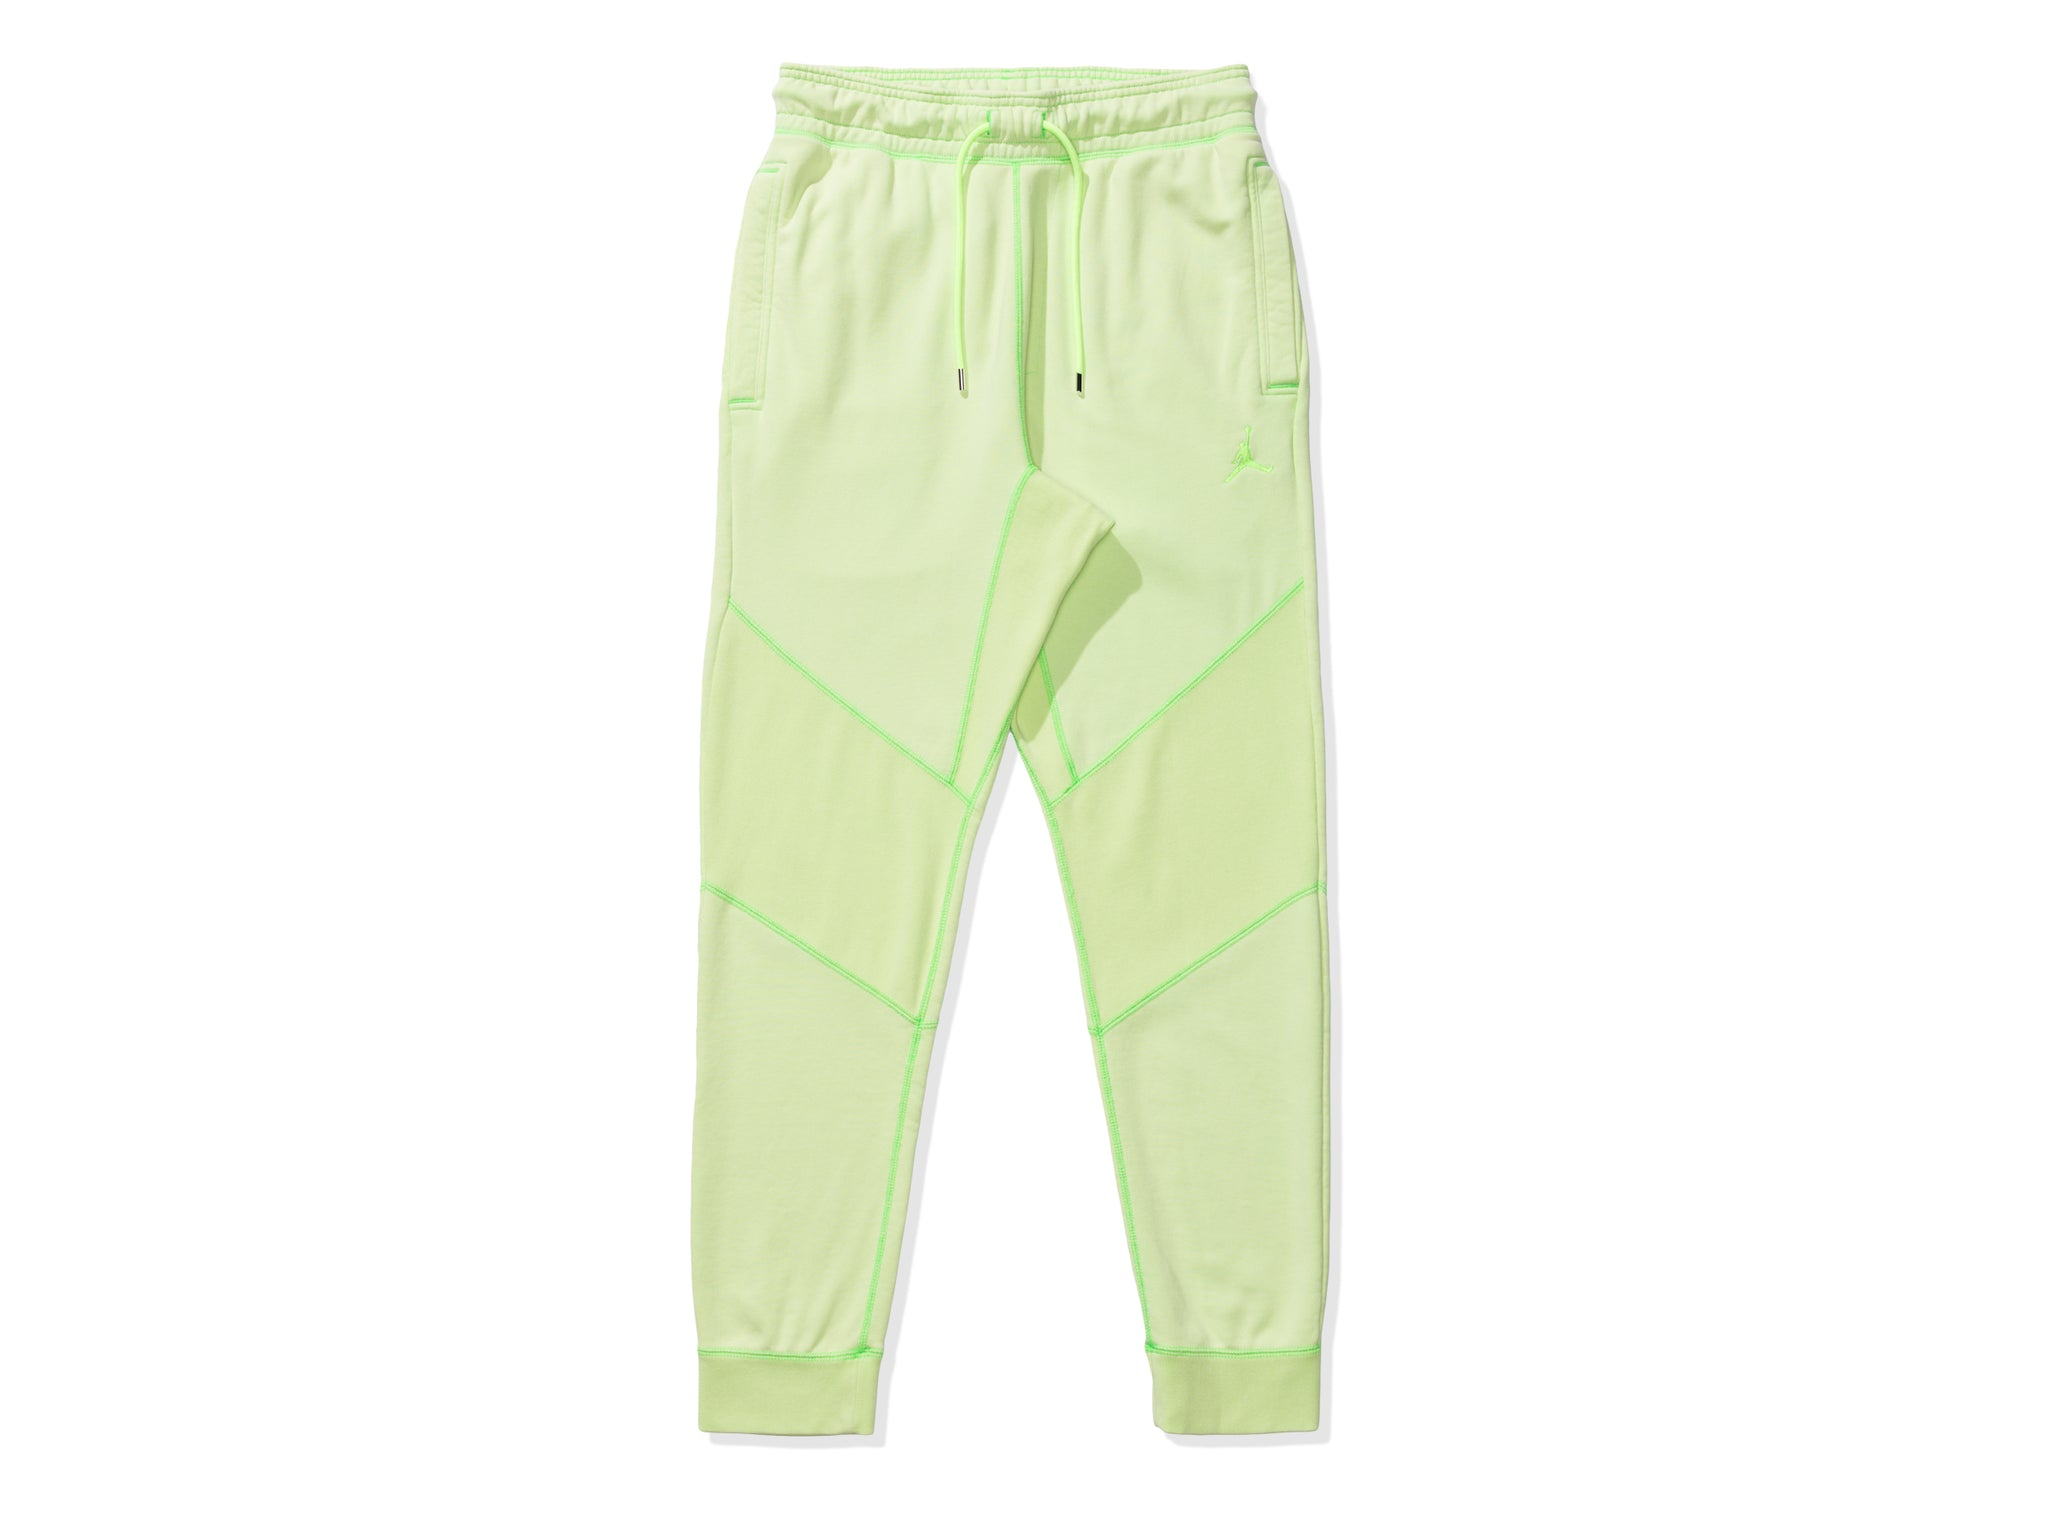 WINGS FLEECE PANT LOOP - GHOSTGREEN